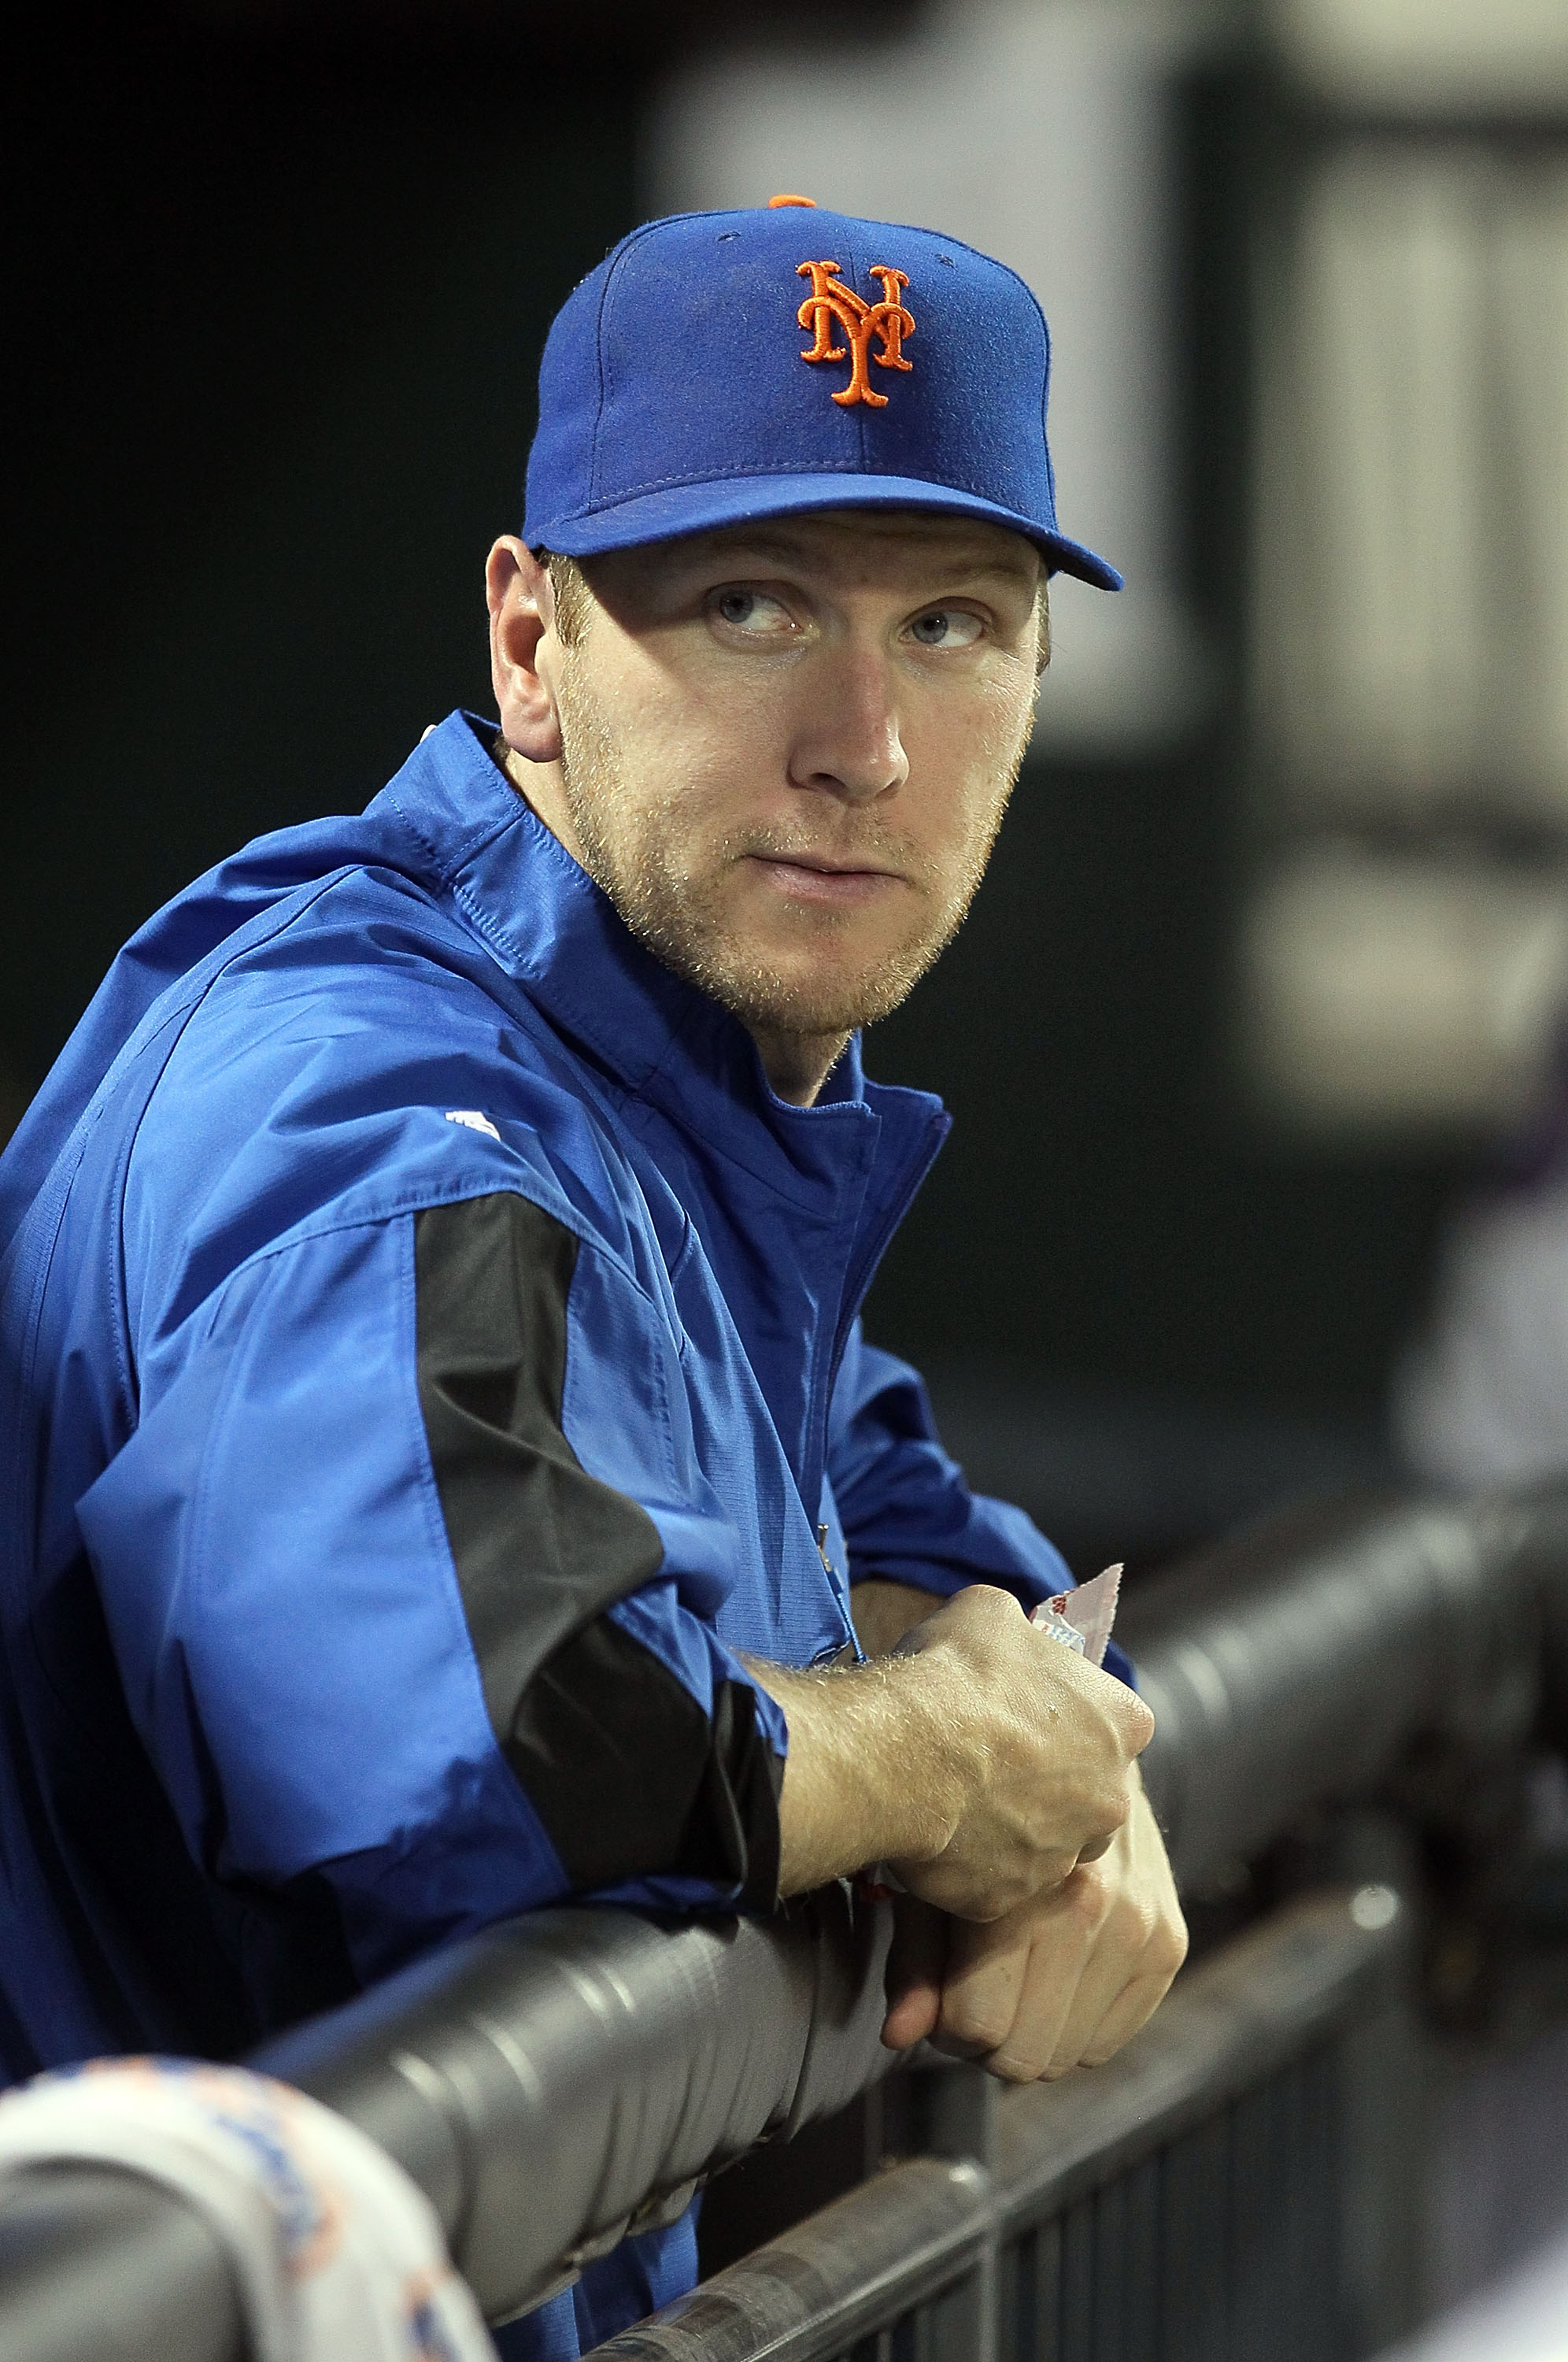 NEW YORK - AUGUST 28:  Jason Bay #44 of the New York Mets looks on from the dugout against the Houston Astros on August 28, 2010 at Citi Field in the Flushing neighborhood of the Queens borough of New York City.  (Photo by Jim McIsaac/Getty Images)